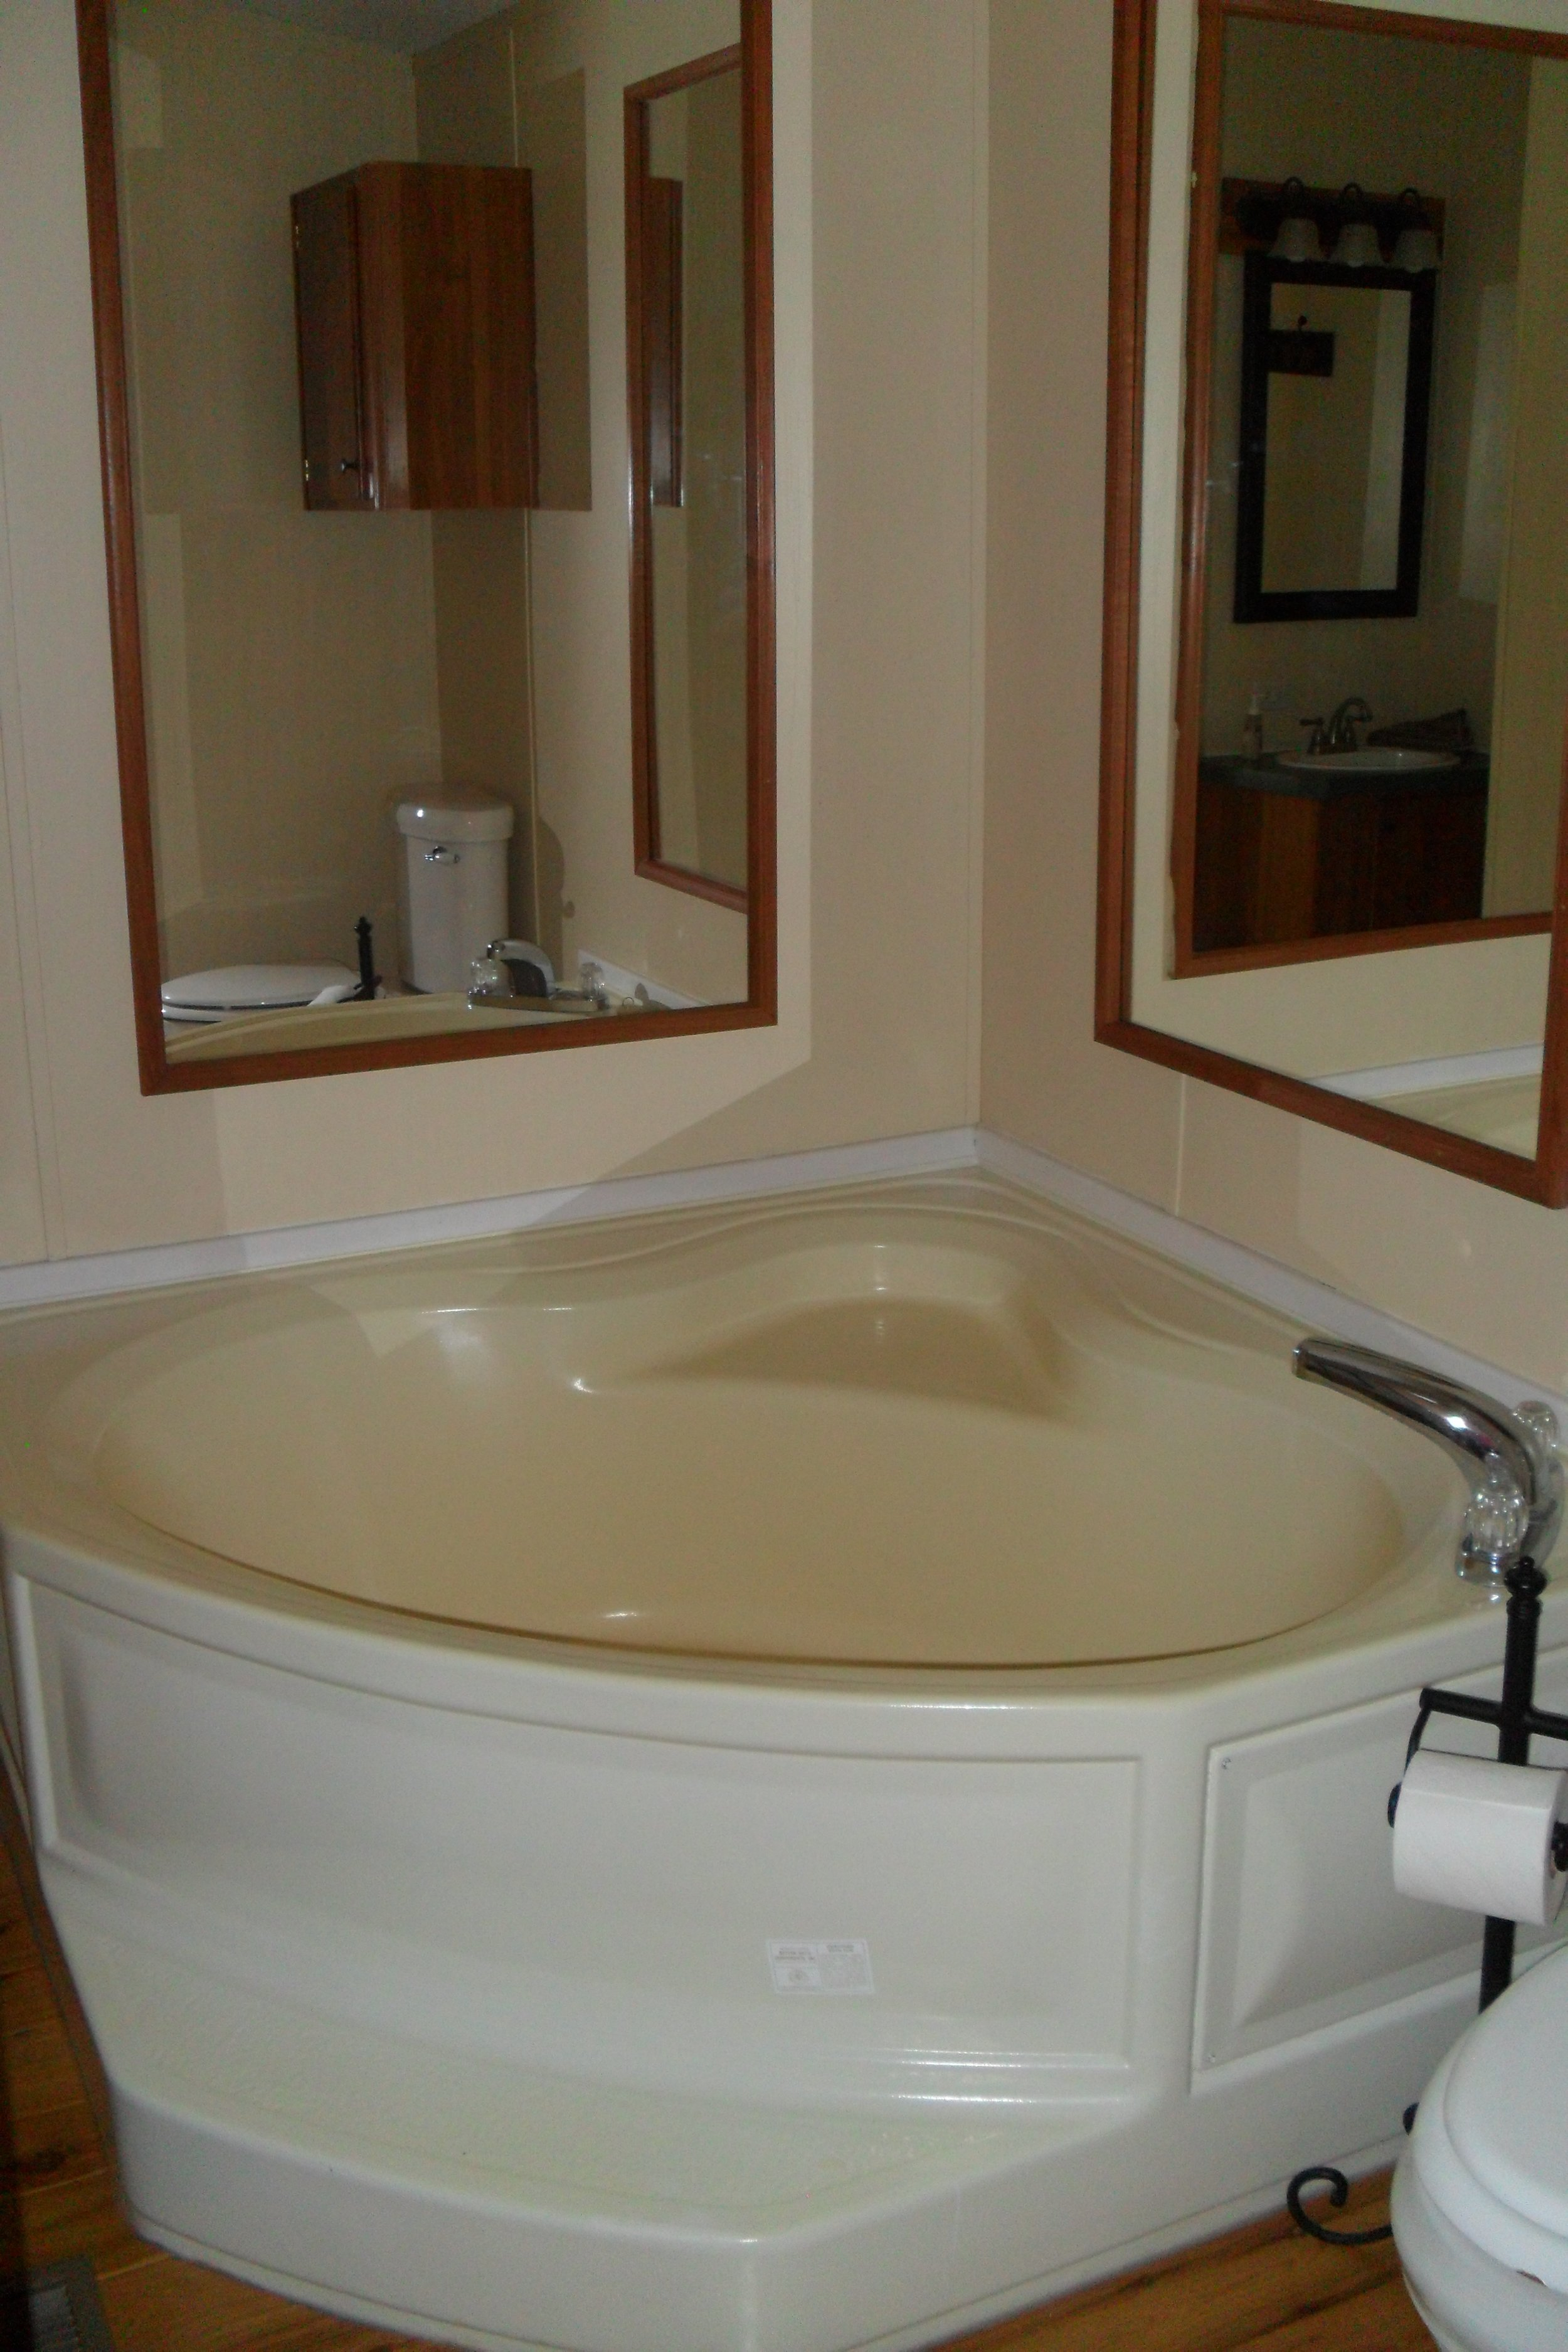 The Cabin: Tallgrass Suite tub and toilet